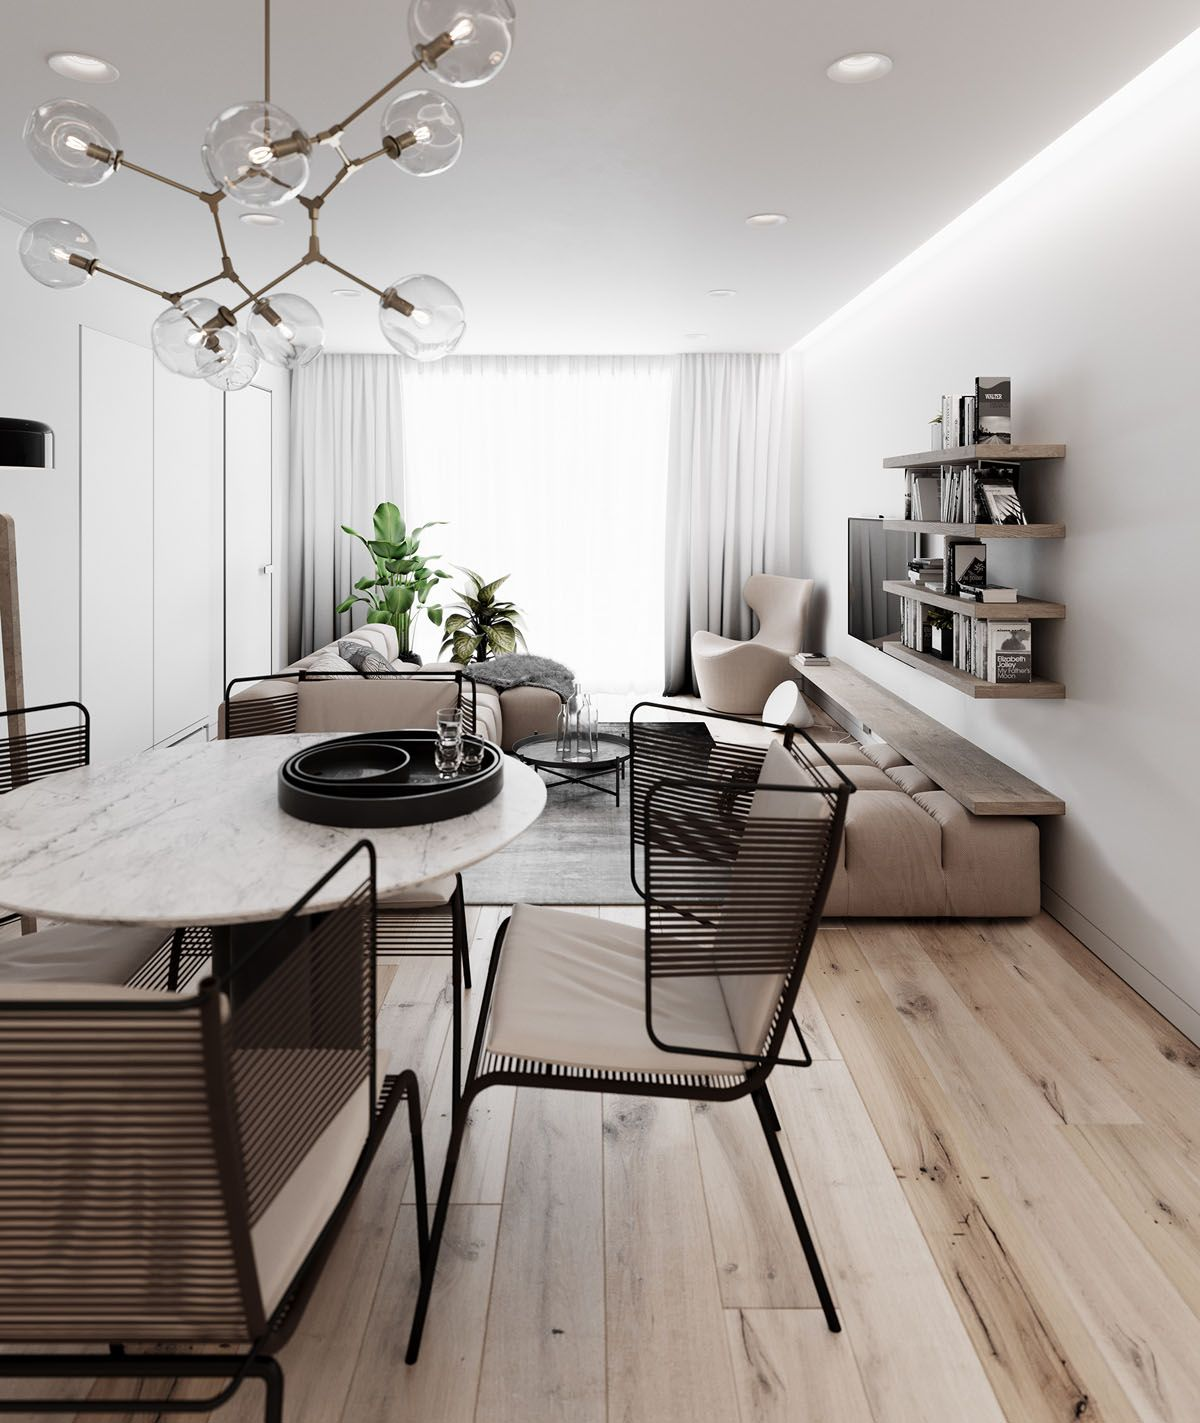 2 Simple Modern Homes With Simple Modern Furnishings Modern Furnishings Home House Design #simple #modern #living #room